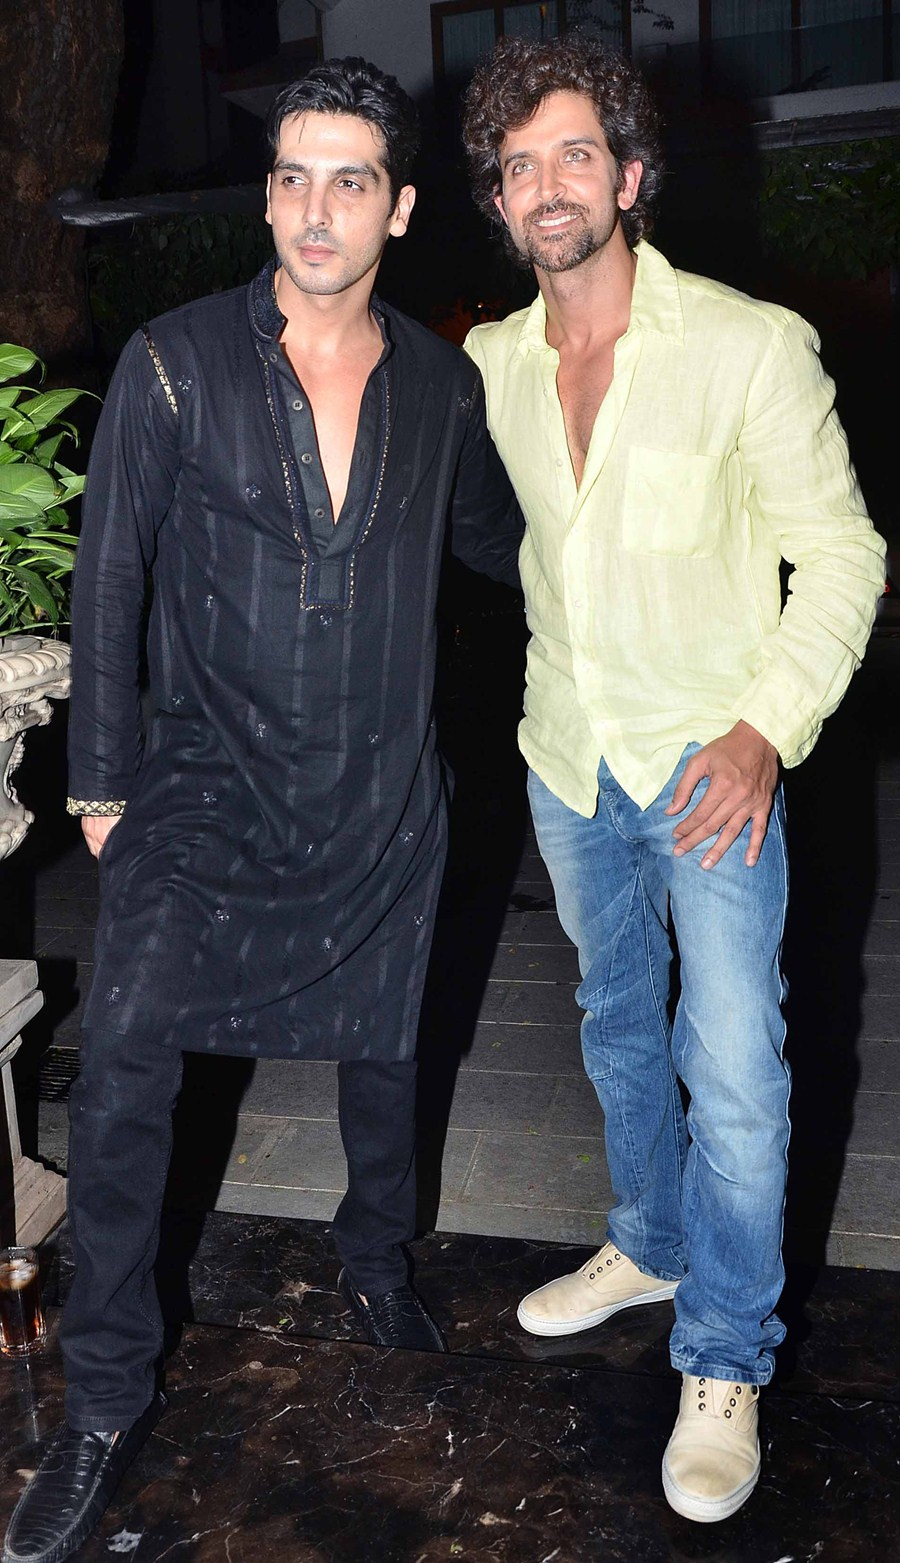 zayed khan film listzayed khan films, zayed khan and shahrukh khan, zayed khan instagram, zayed khan wikipedia, zayed khan height, zayed khan twitter, zayed khan and shahrukh khan movies, zayed khan dia mirza movie, zayed khan biography, zayed khan facebook, zayed khan wife, zayed khan family, zayed khan sister, zayed khan songs, zayed khan father, zayed khan film list, zayed khan photos, zayed khan filmography, zayed khan and esha deol movies, dia mirza and zayed khan